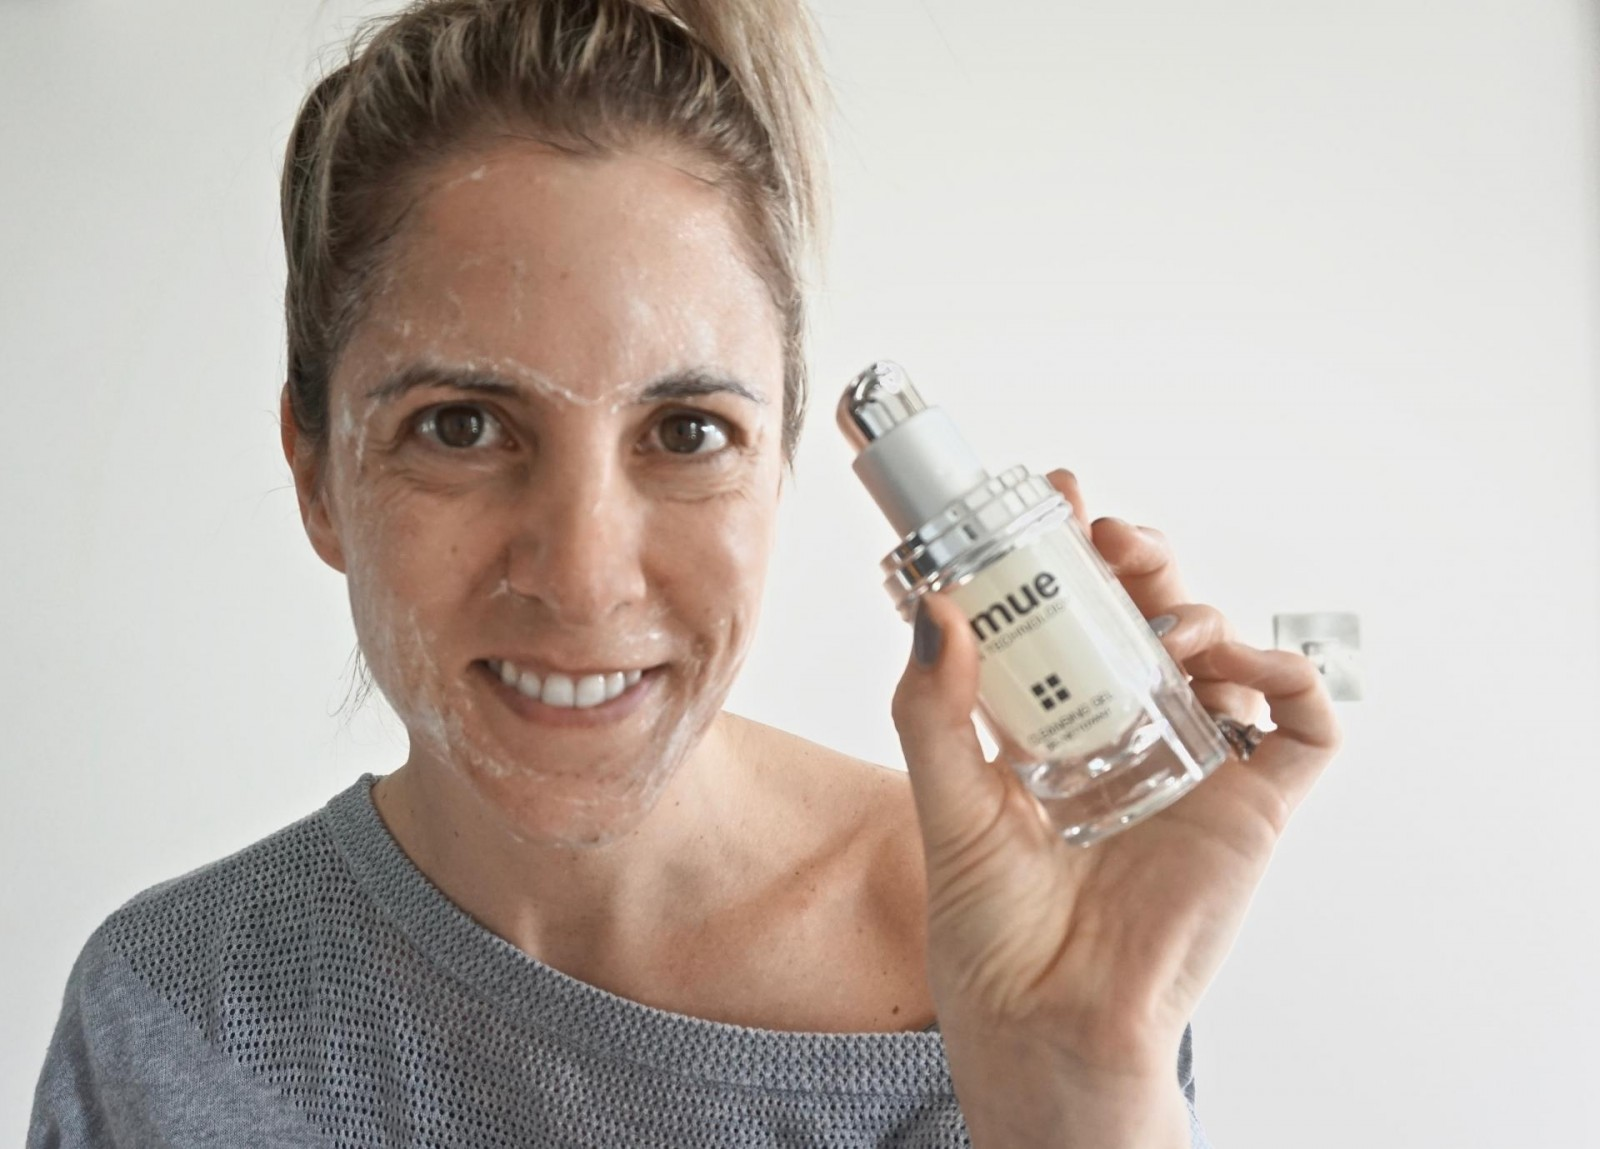 It's all change with Nimue Skincare!